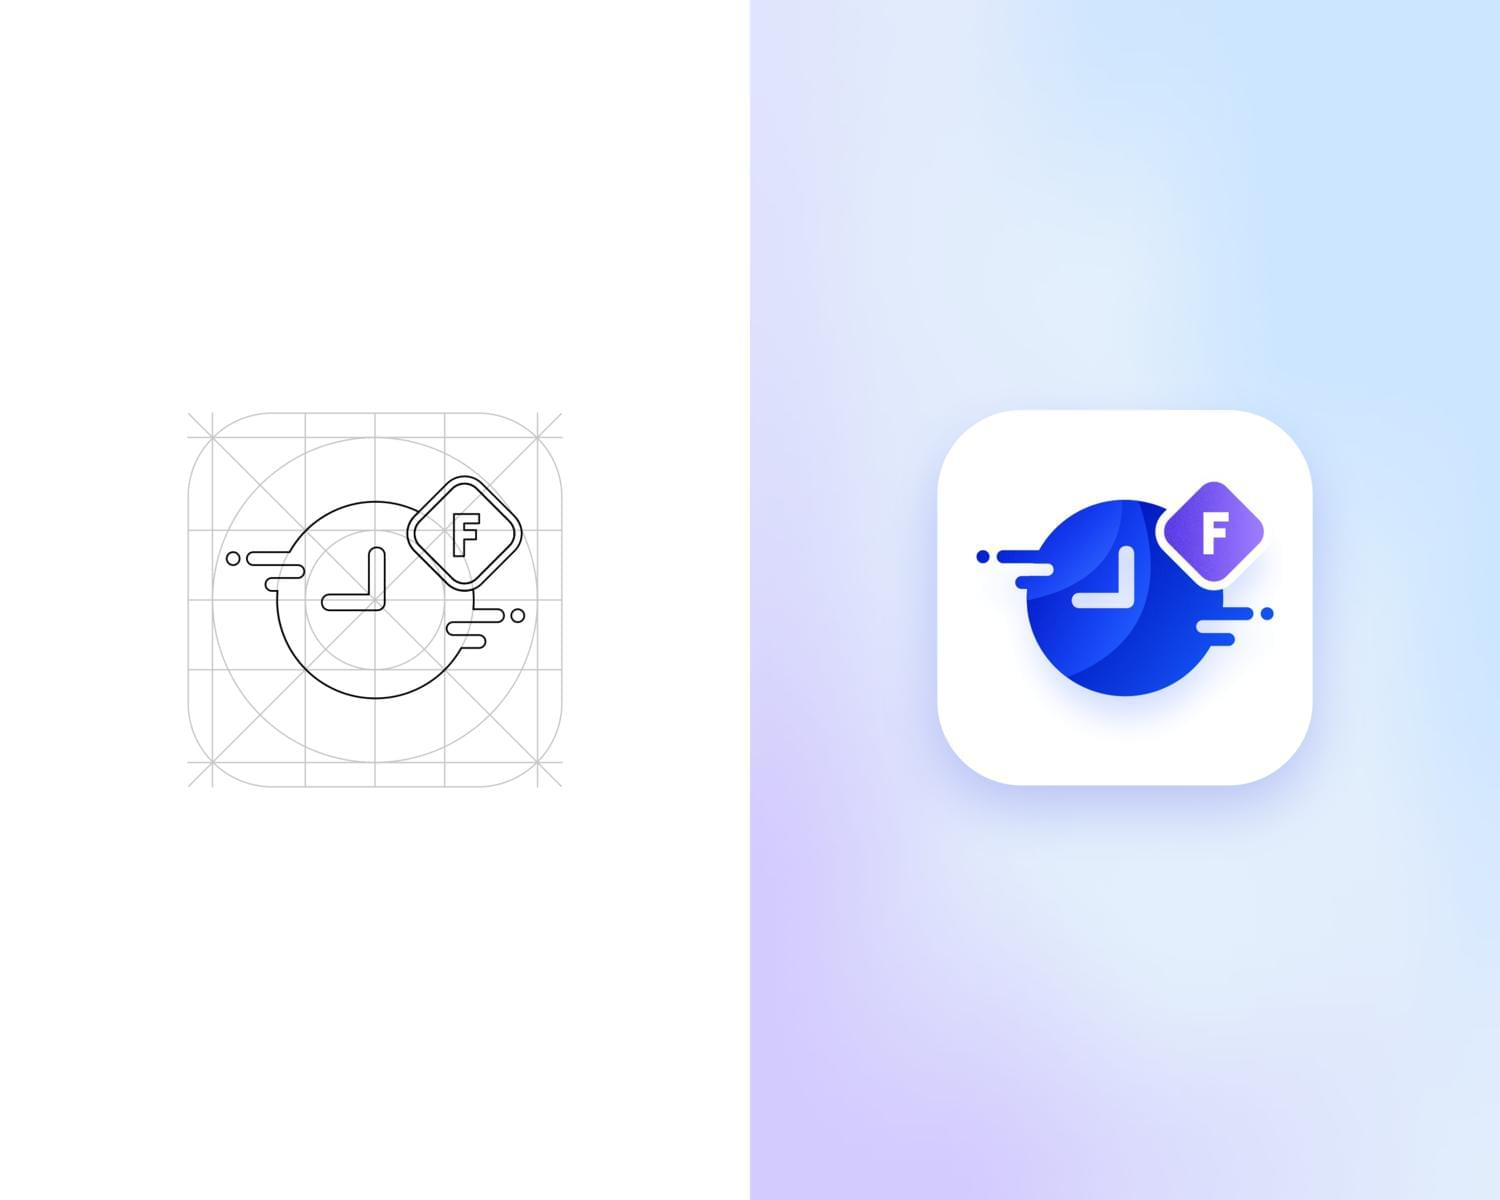 iOS and App Icon Design by aleksandr-mansurov-ru - 115290